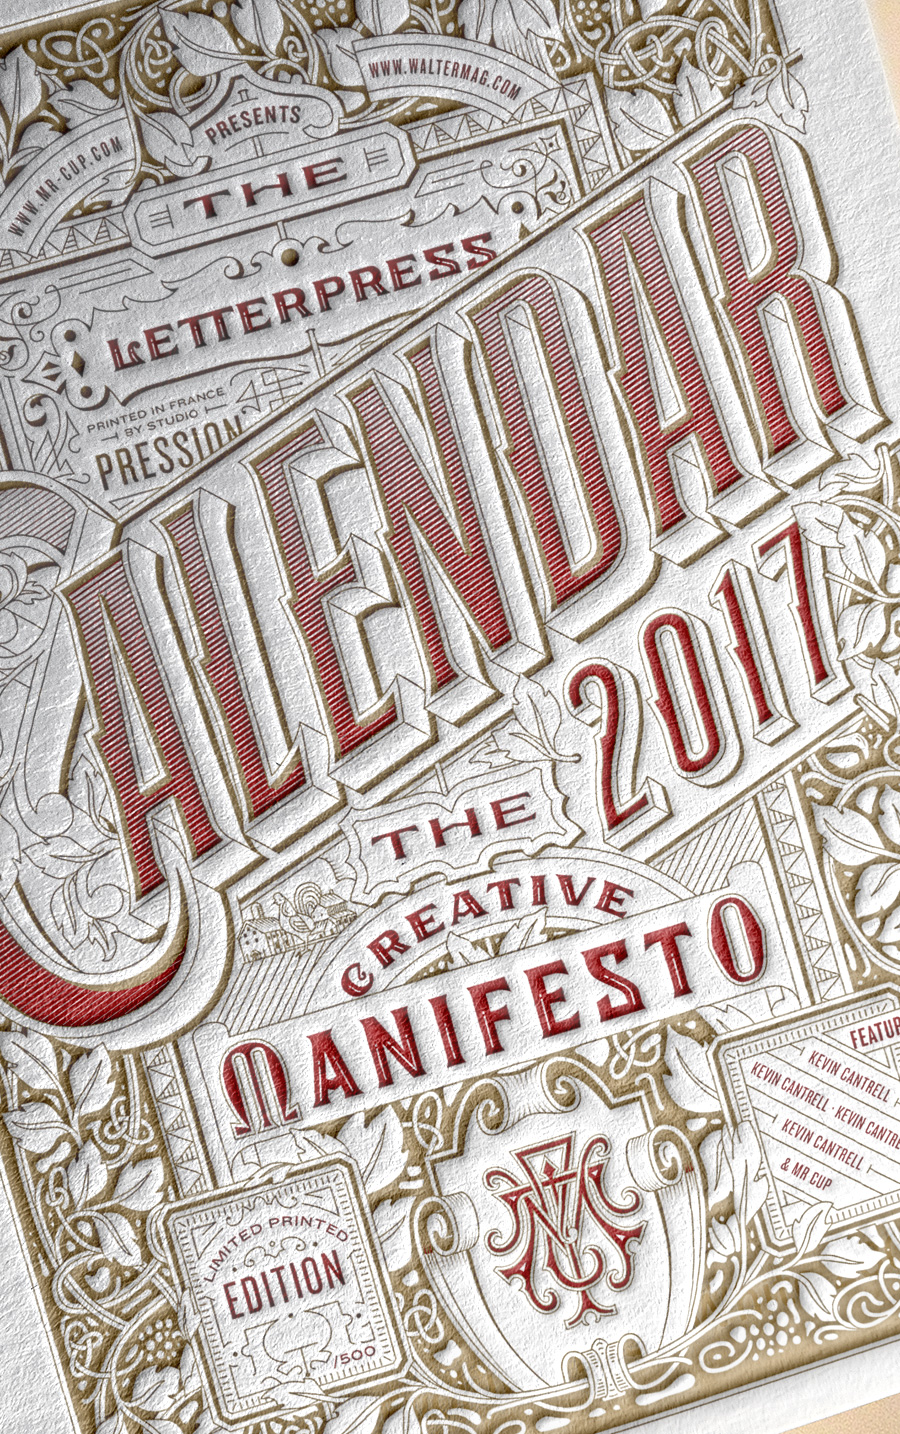 Mr Cup 2017 letterpress calendar design by Kevin Cantrell